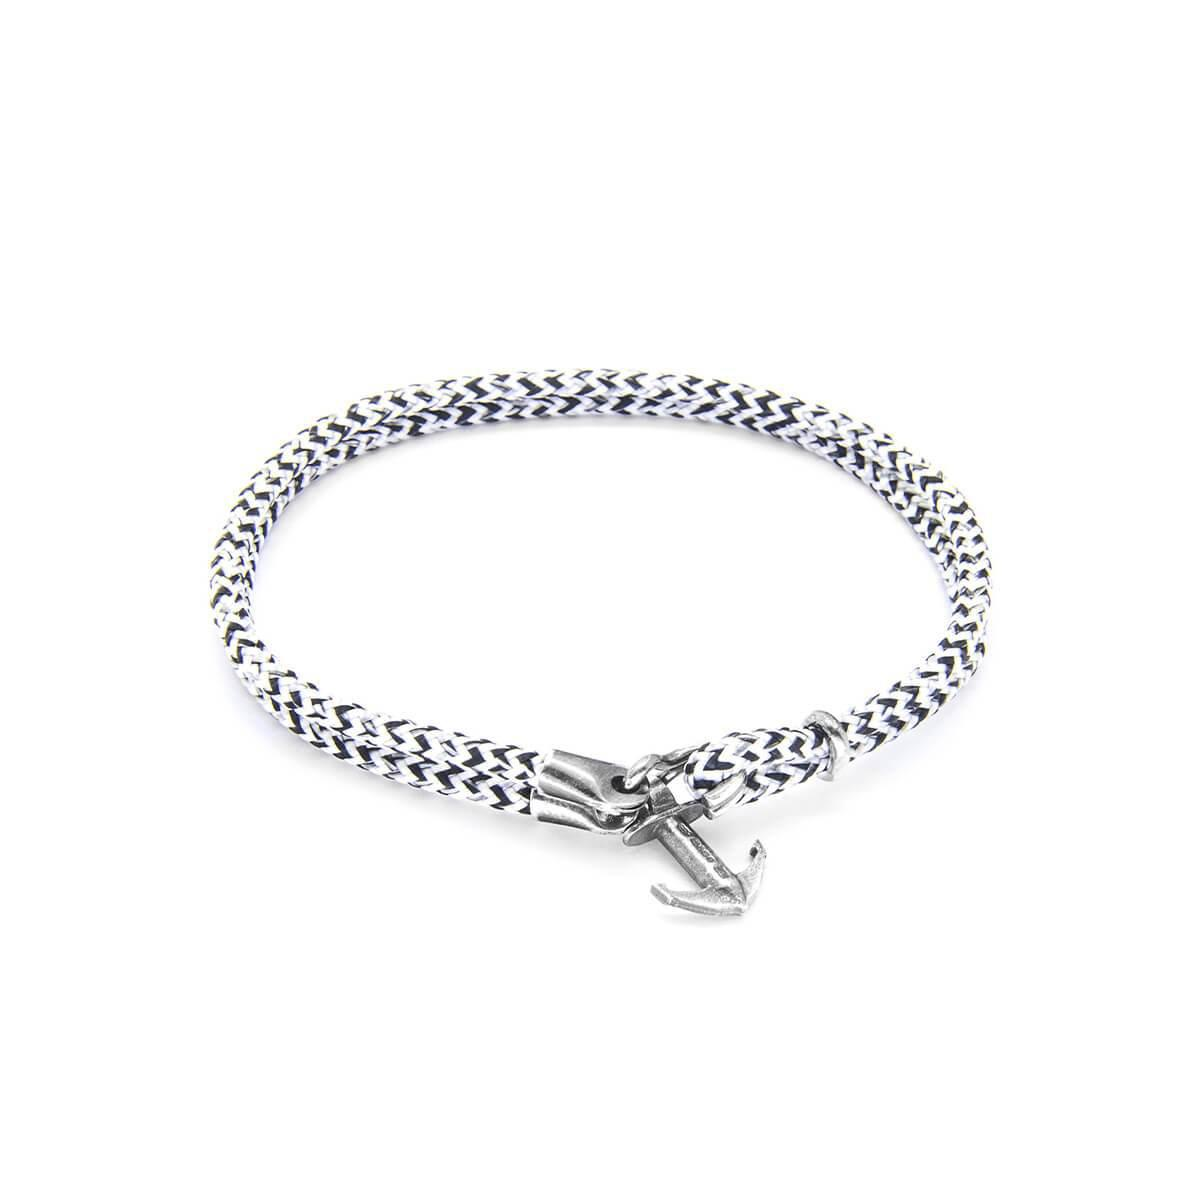 Anchor & Crew Blue Noir Brighton Silver And Rope Bracelet - 19cm (most popular) F9GTUG0d